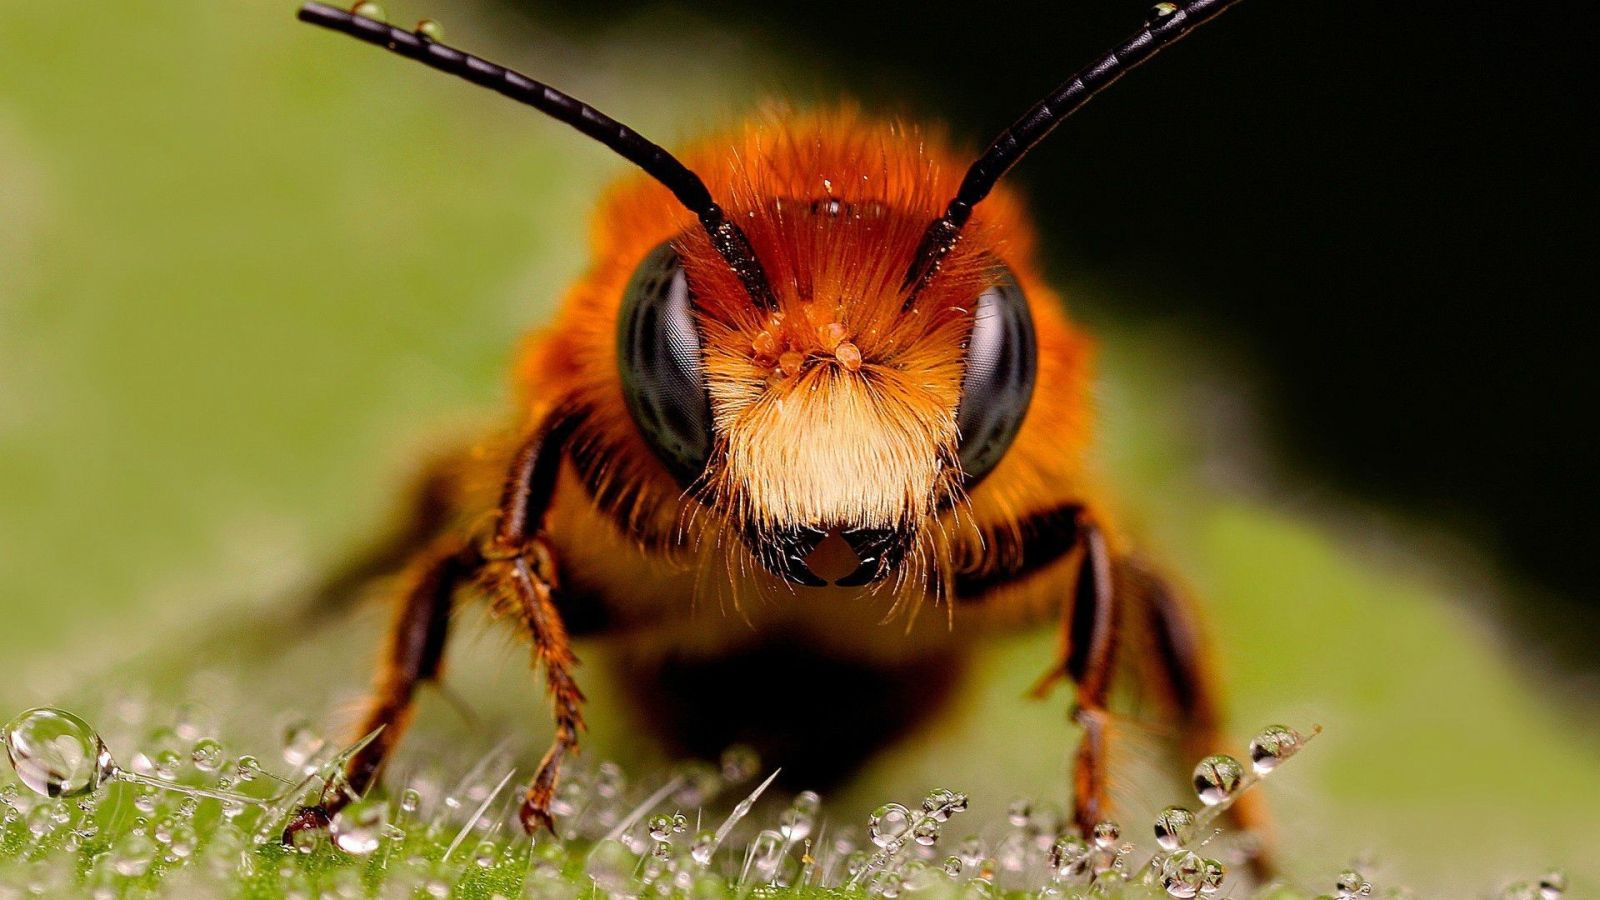 images of a bee